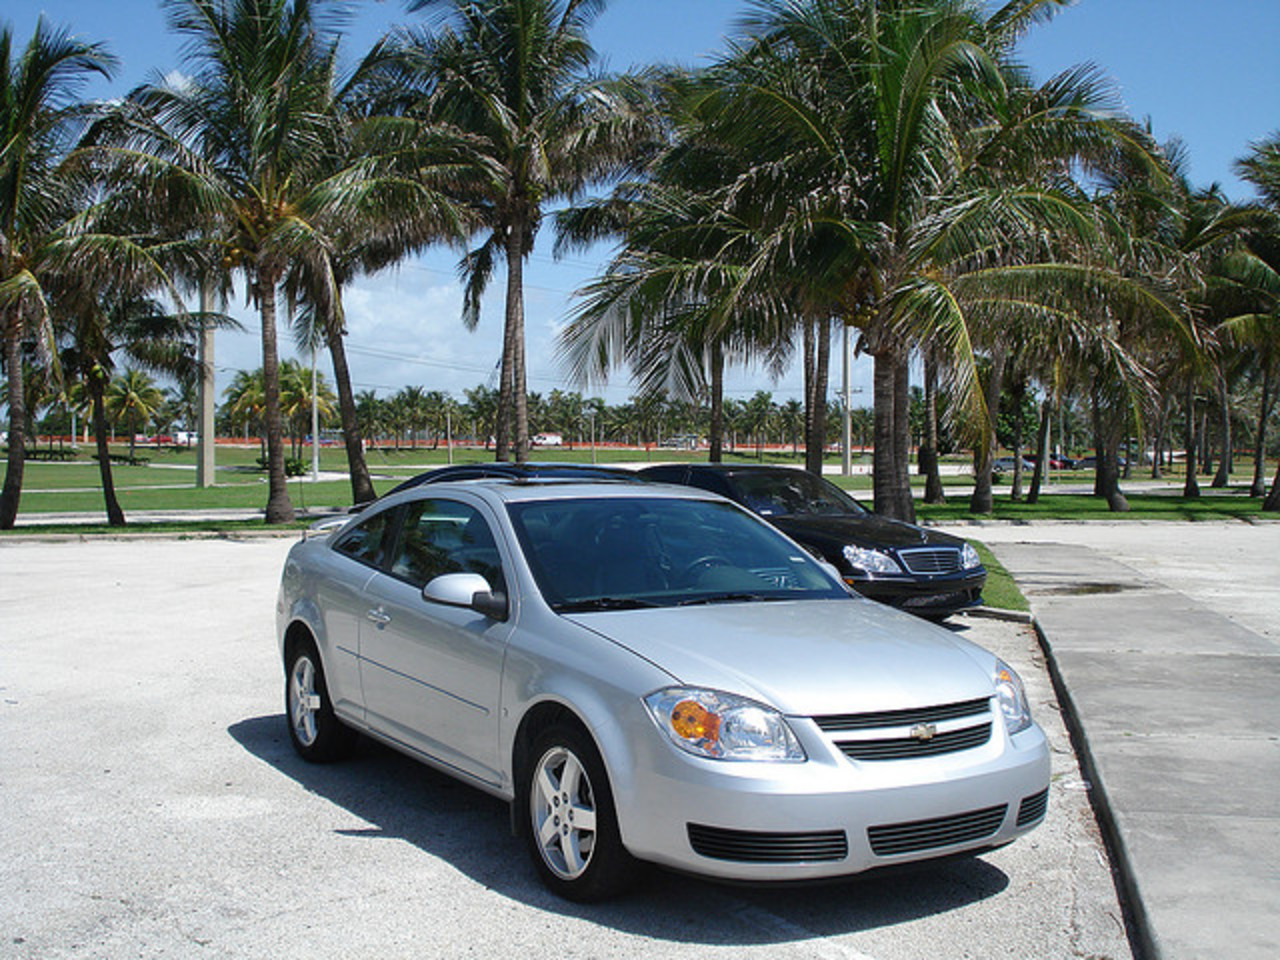 Chevrolet Cobalt LT | Flickr - Photo Sharing!